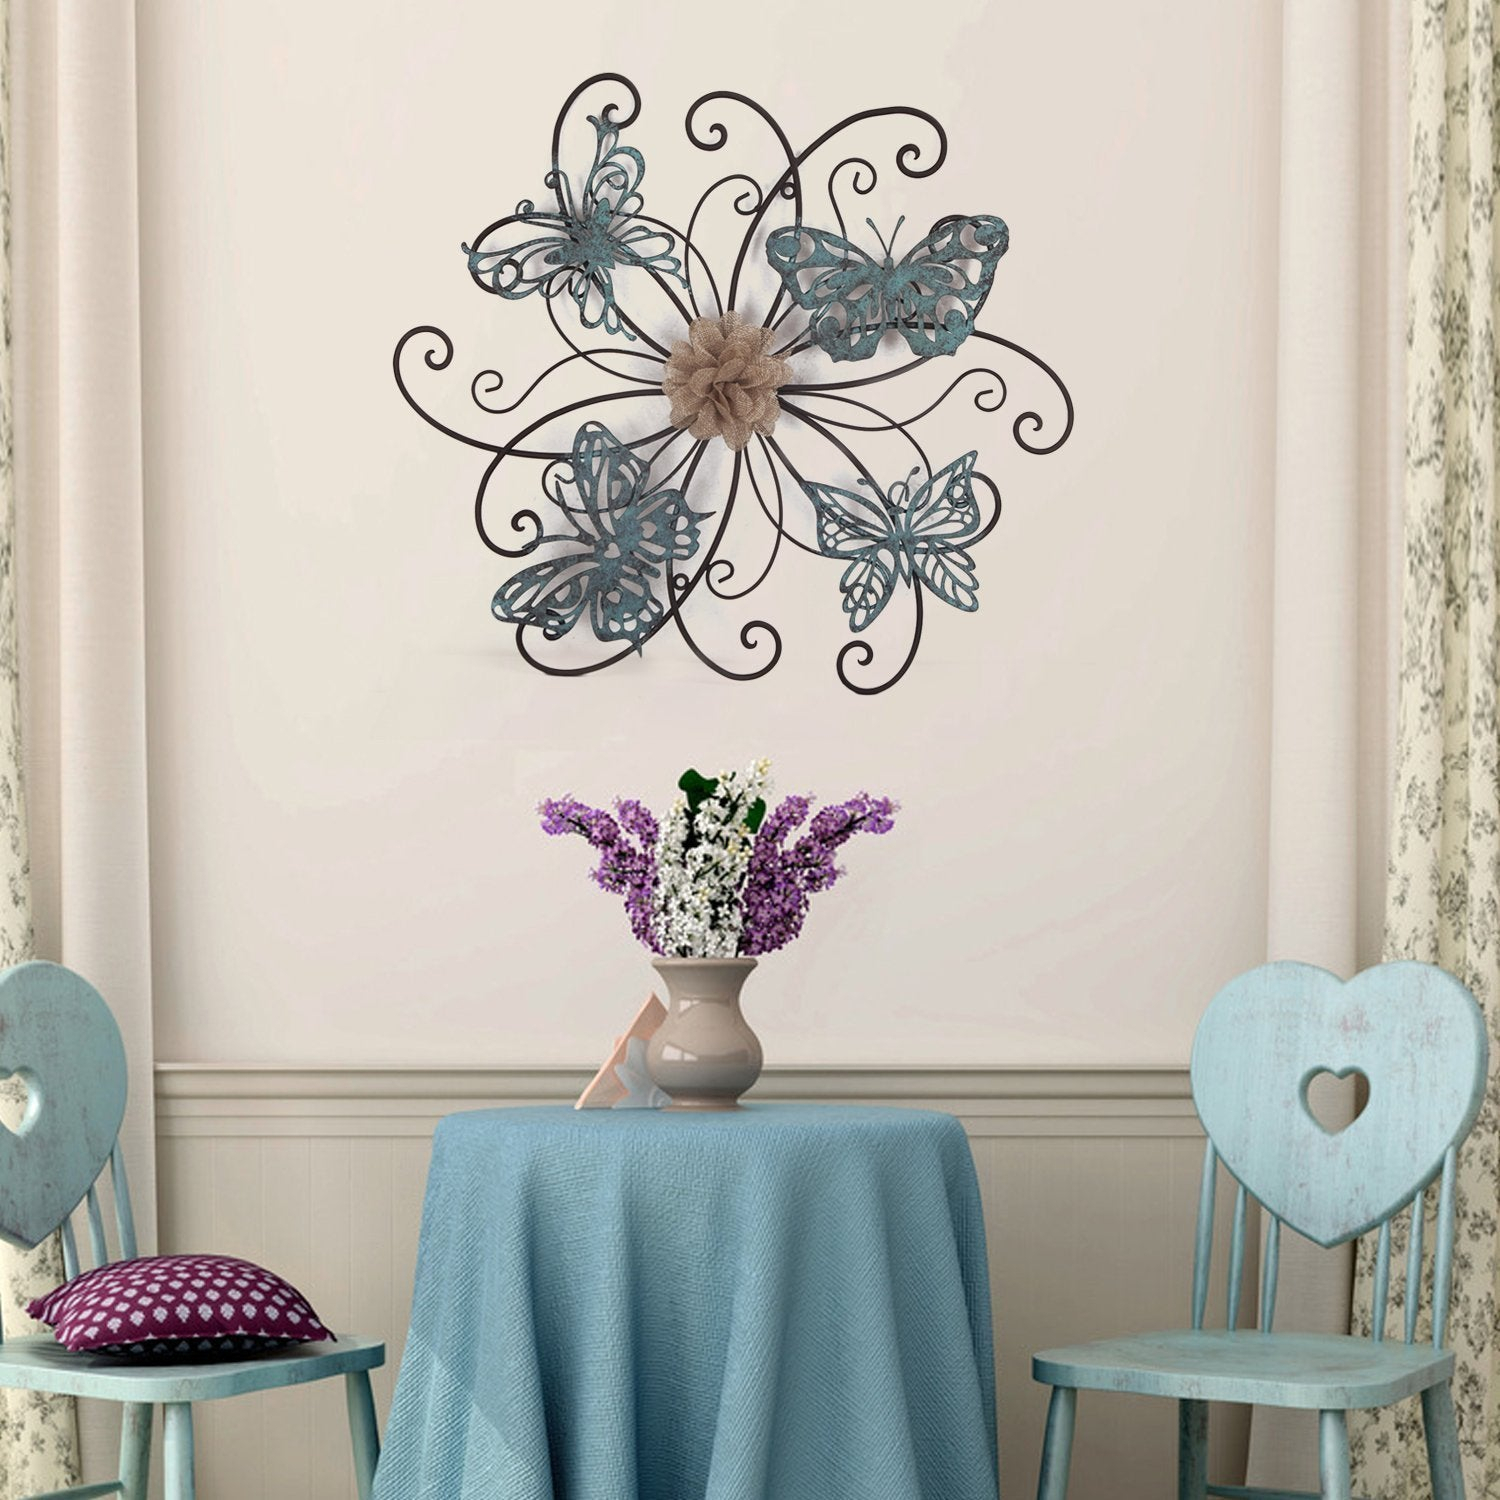 Details About Adeco Flower And Butterfly Urban Design Metal Wall Decor For  Nature Home Art Pertaining To Flower Urban Design Metal Wall Decor (Photo 11 of 30)